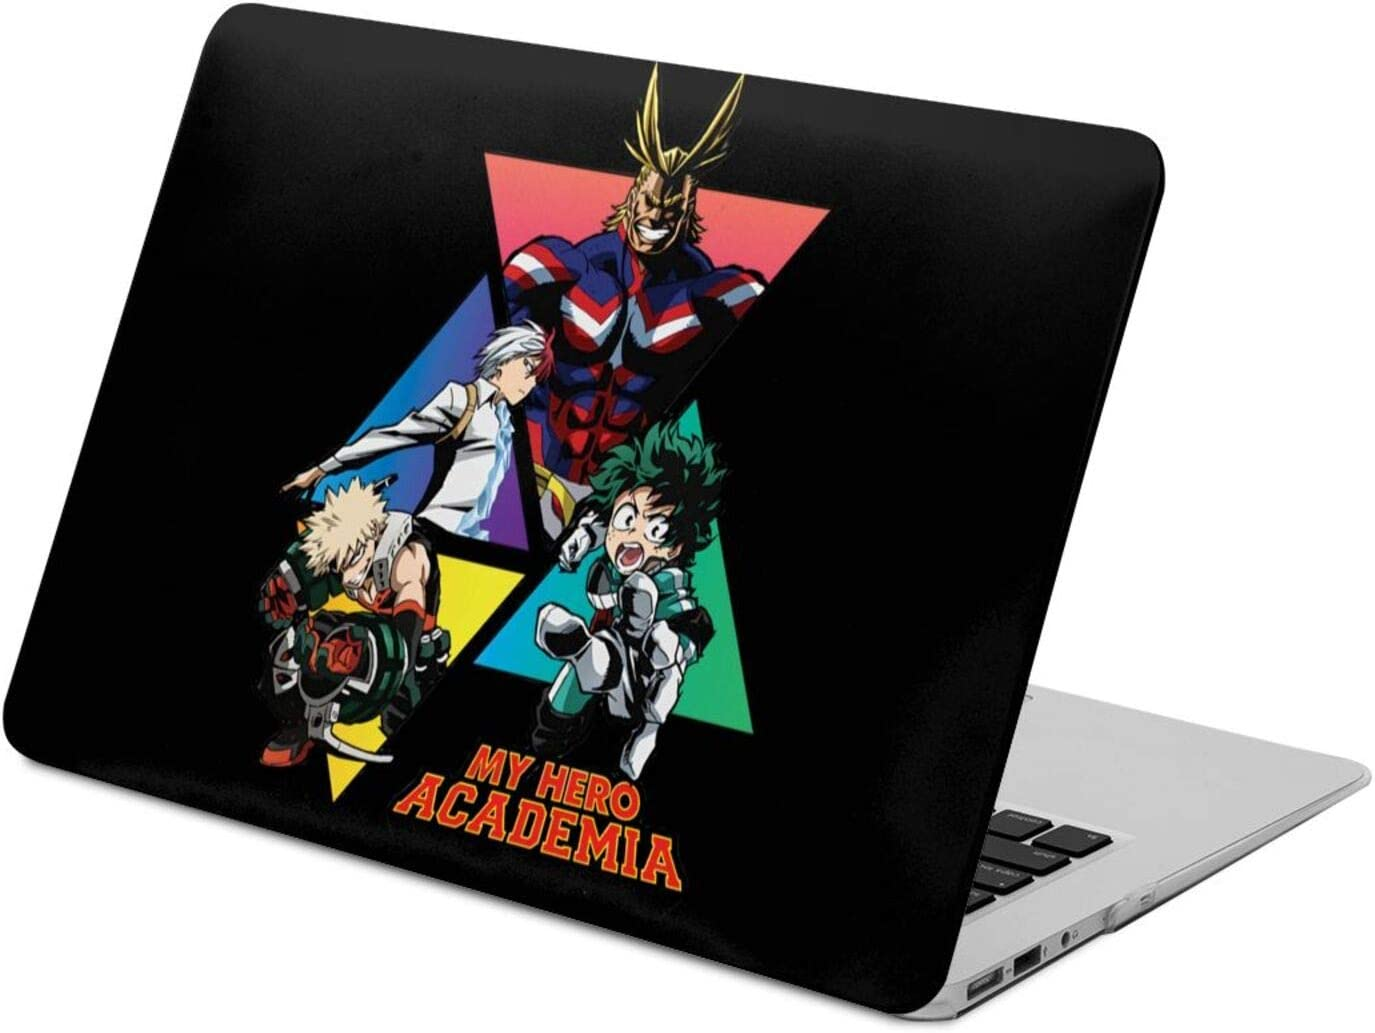 DHFDH My Hero Academia Laptop Case, Hard Case Plastic Pattern Shell Hard Caser,Storage Bag Compatible with MacBook Air13, Pro13 inch Case for A1706,A1708,A1989,A2159,A1466,A1369,A1932,A1707,A1990